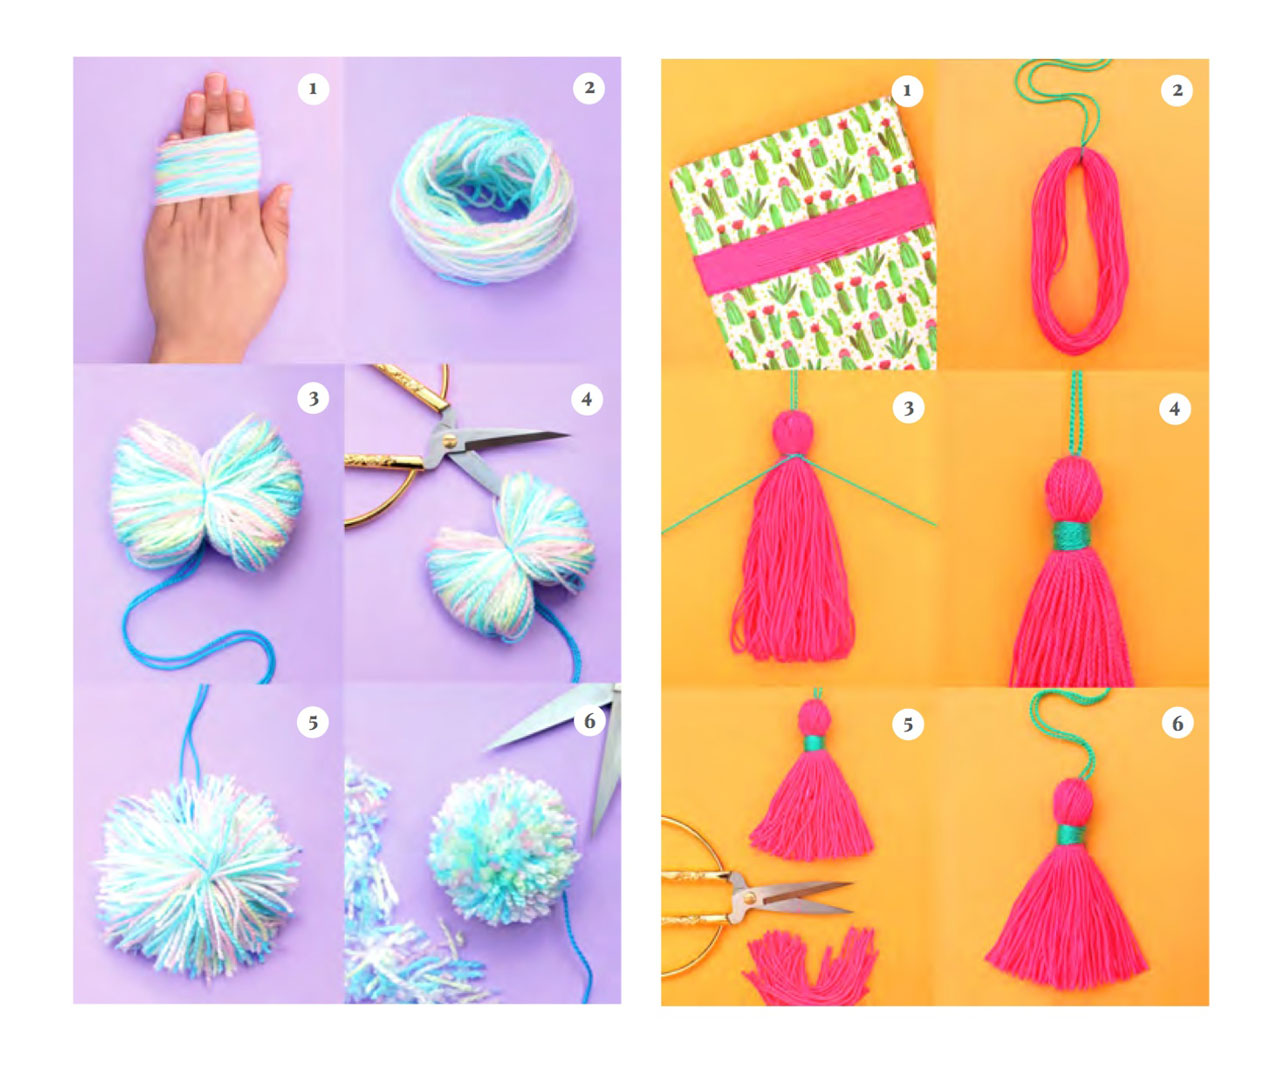 How to make tassels and pom-poms with DIY step-by-step tutorials and photos